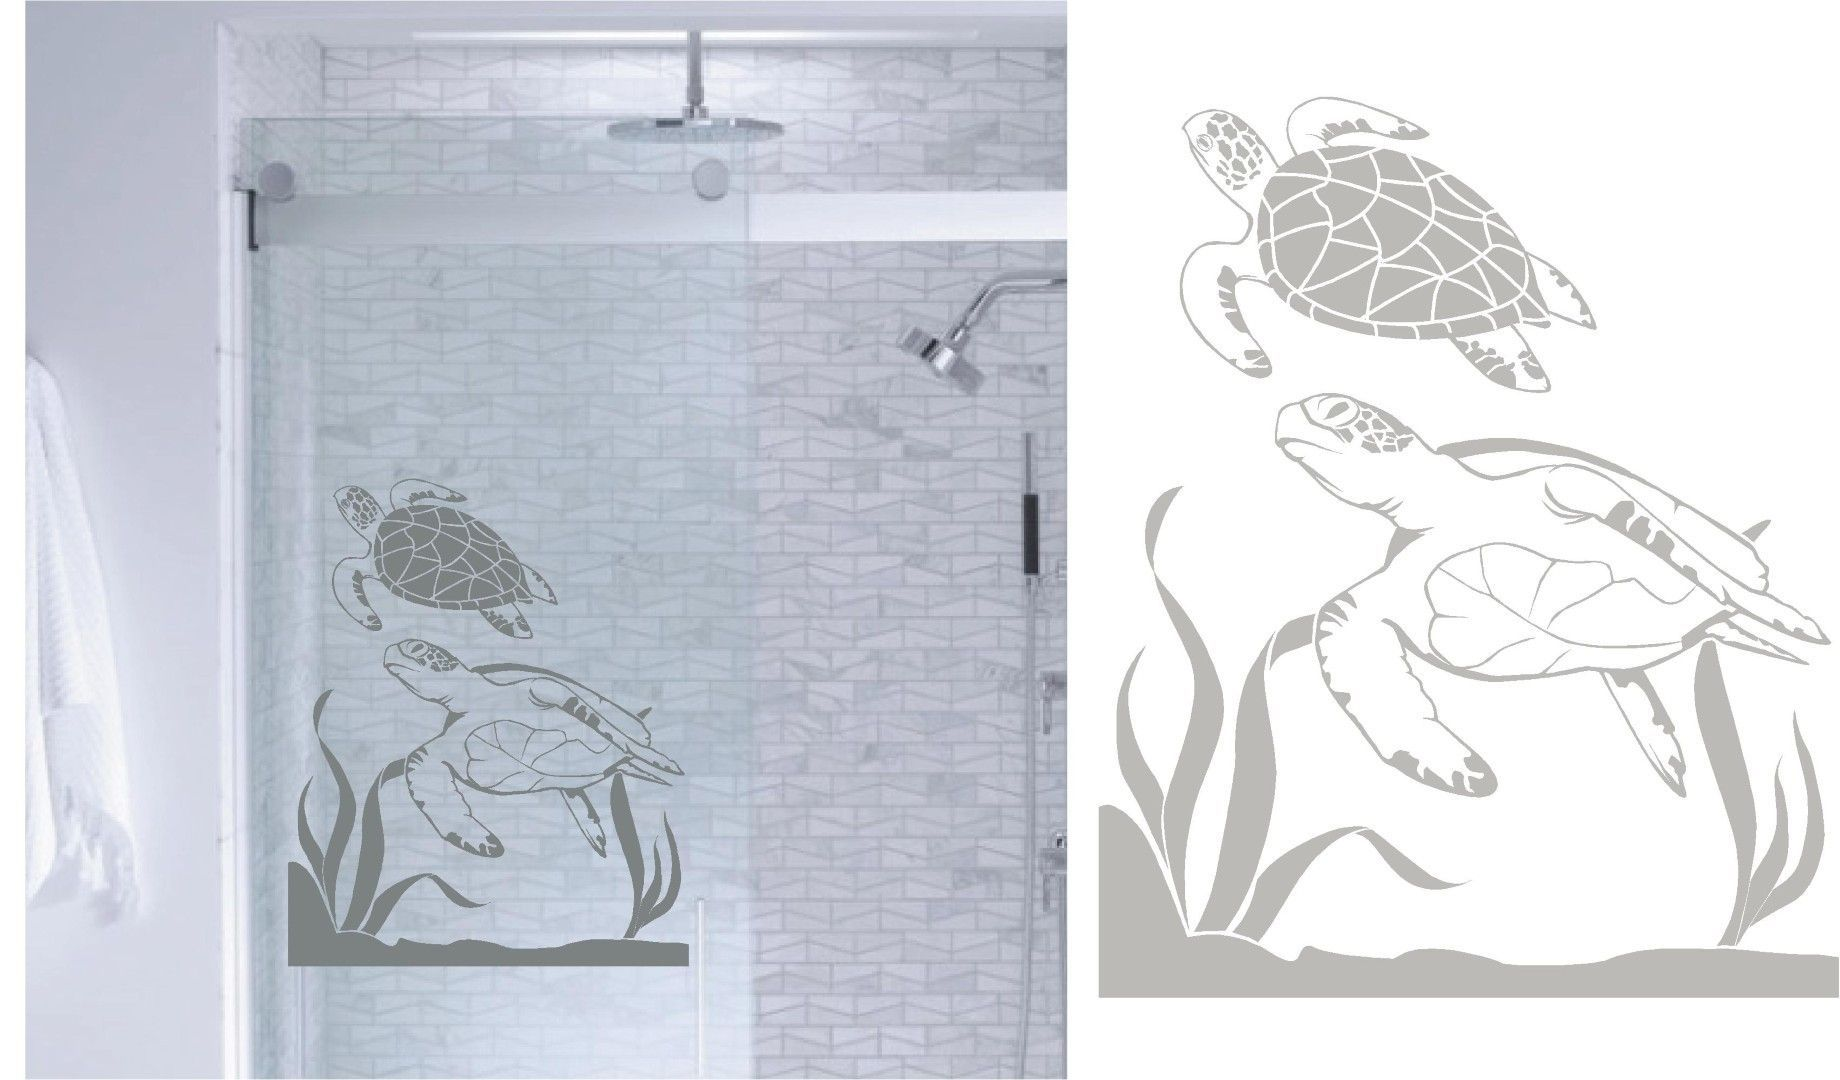 Bathroom Partitions Kent Washington sea turtles ocean diy etched glass vinyl window films shower door